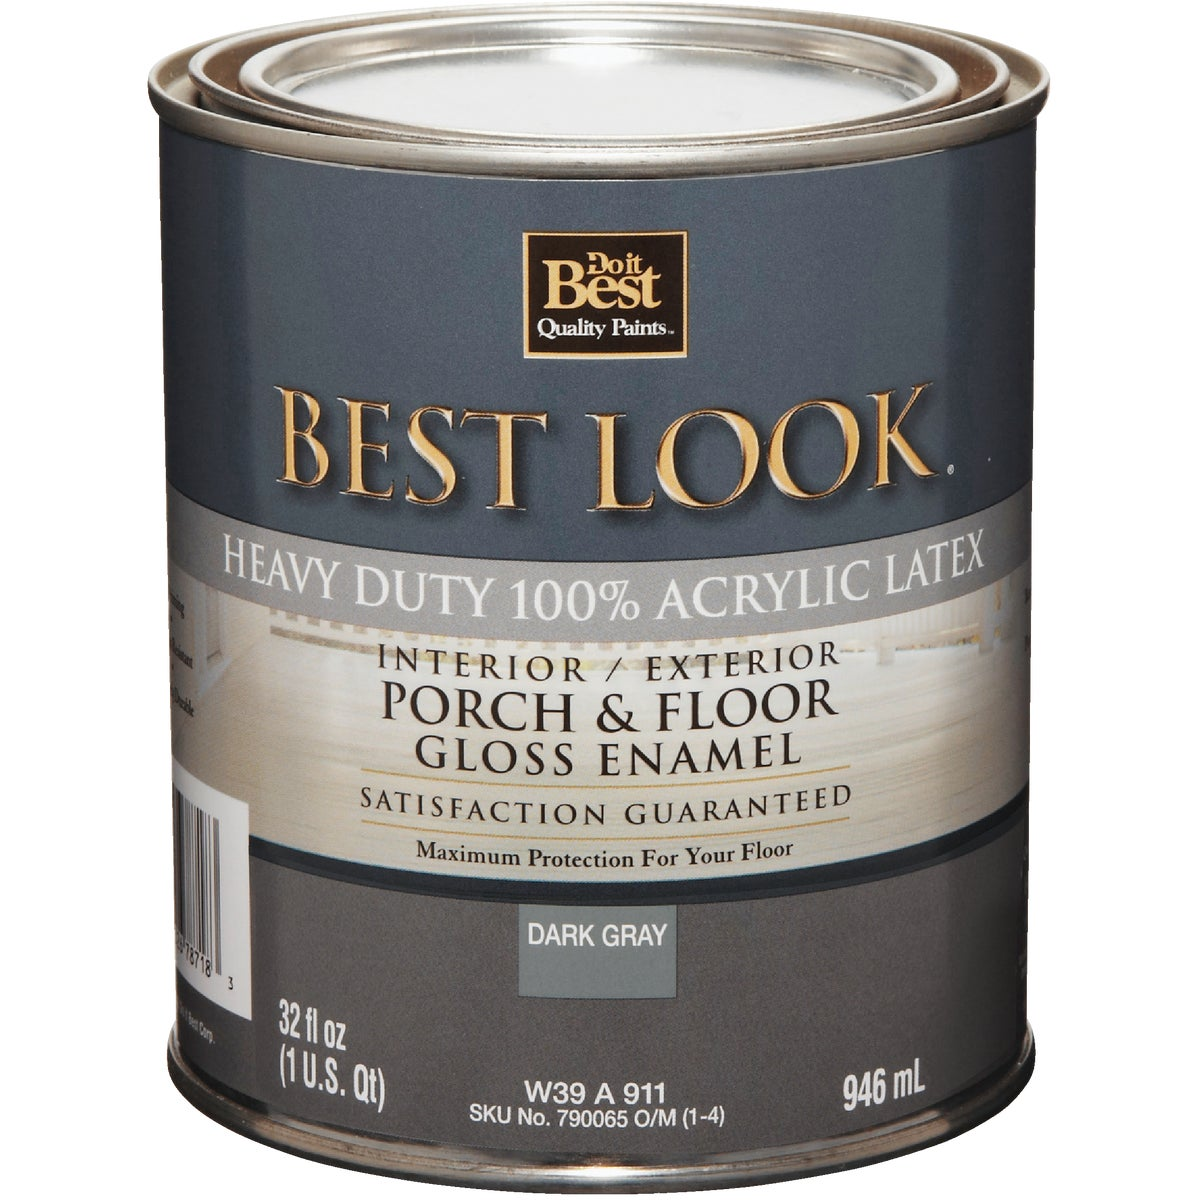 GLS DK GRAY FLOOR ENAMEL - W39W00911-14 by Do it Best